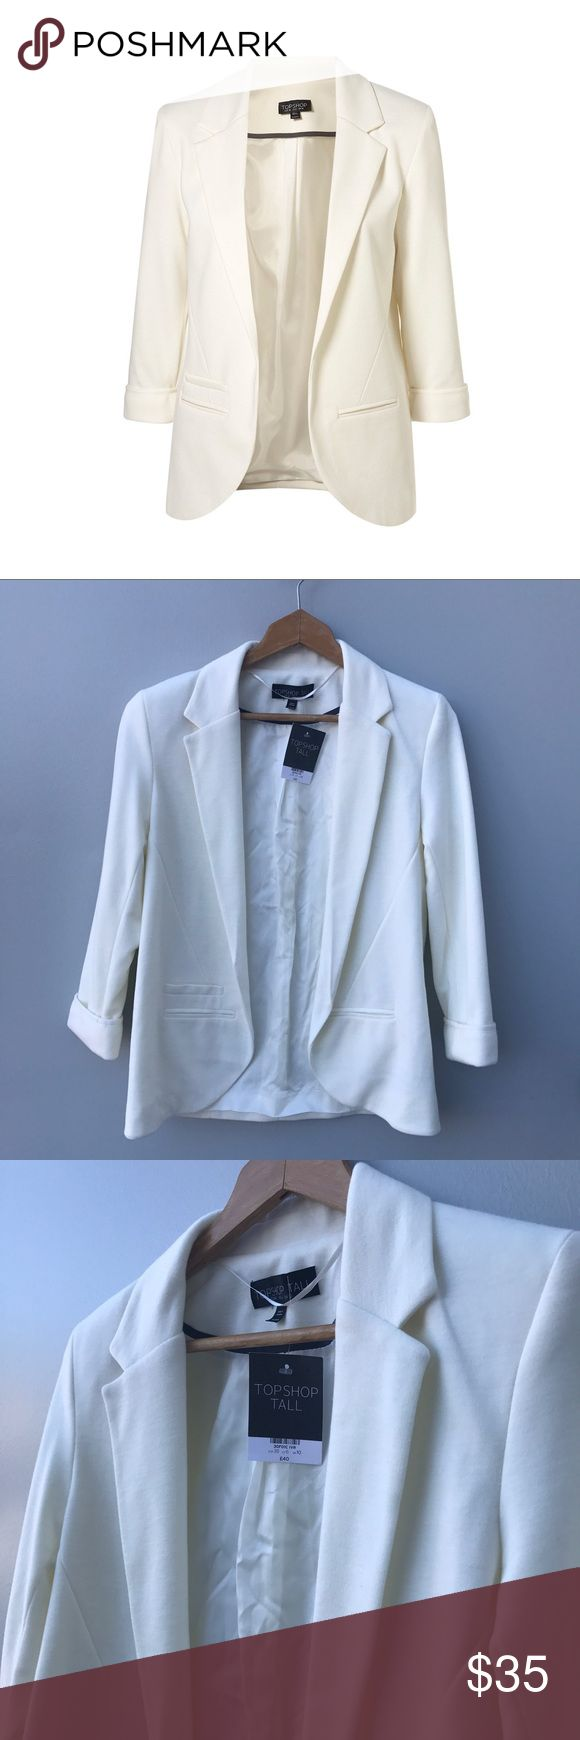 TopShop TALL Ponte Suit Jacket Blazer sz 6 NWT NWT. Never worn. Ivory tall lined ponte blazer from TopShop. Didn't pay attention that it's for a tall person. And I'm short. Size 6 / UK 10. Really beautiful cut jacket. Topshop Jackets & Coats Blazers